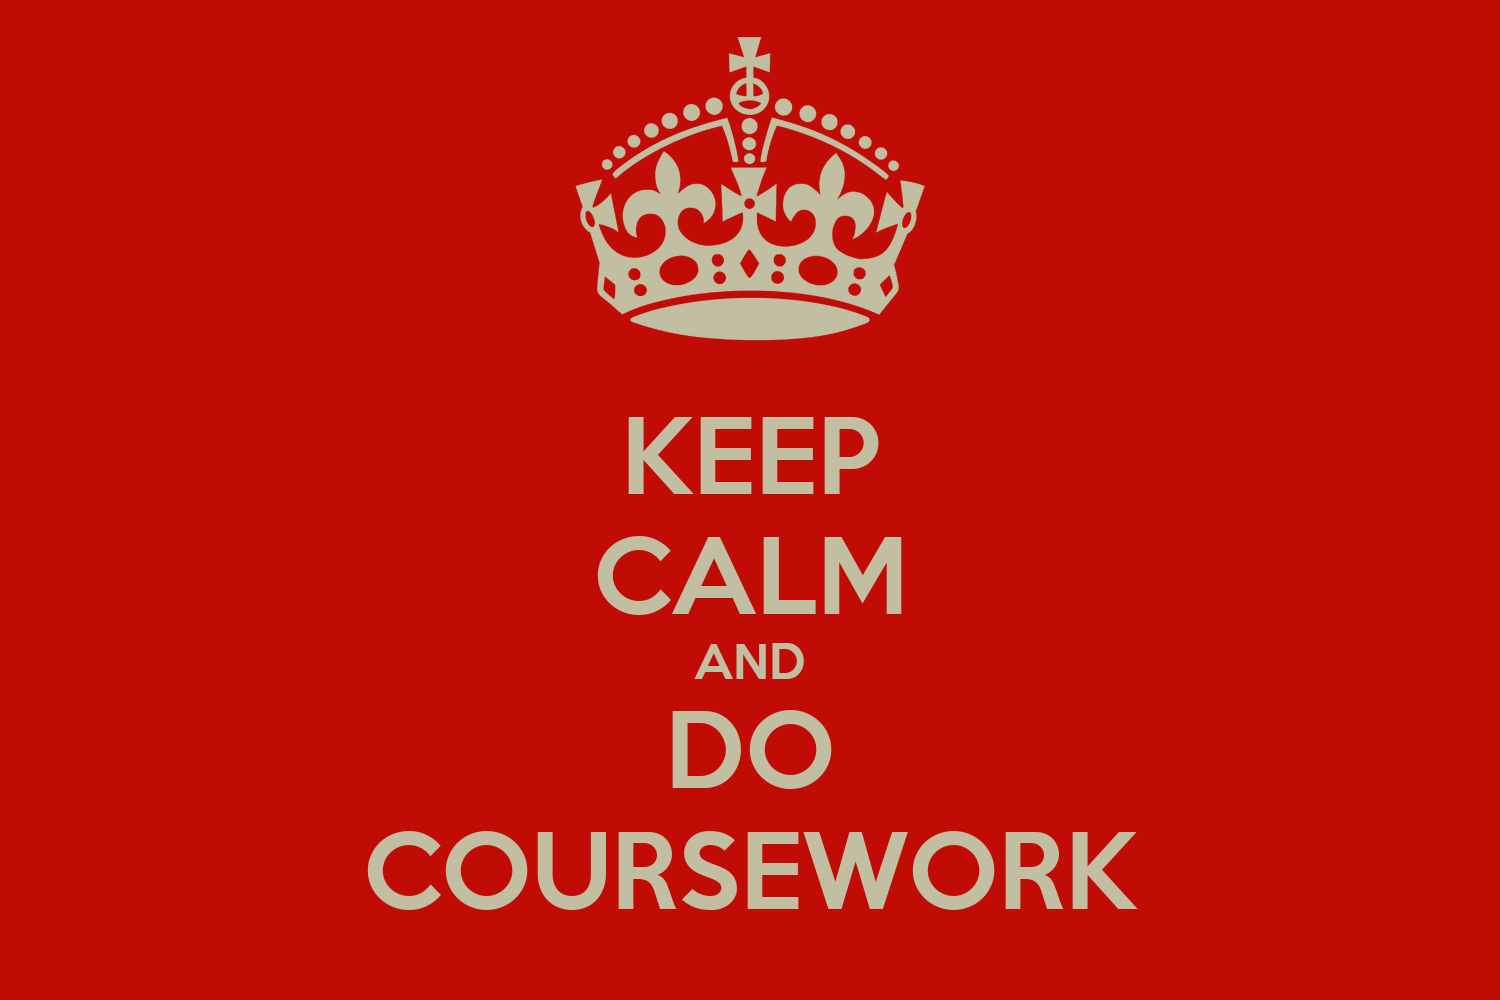 Courseworl